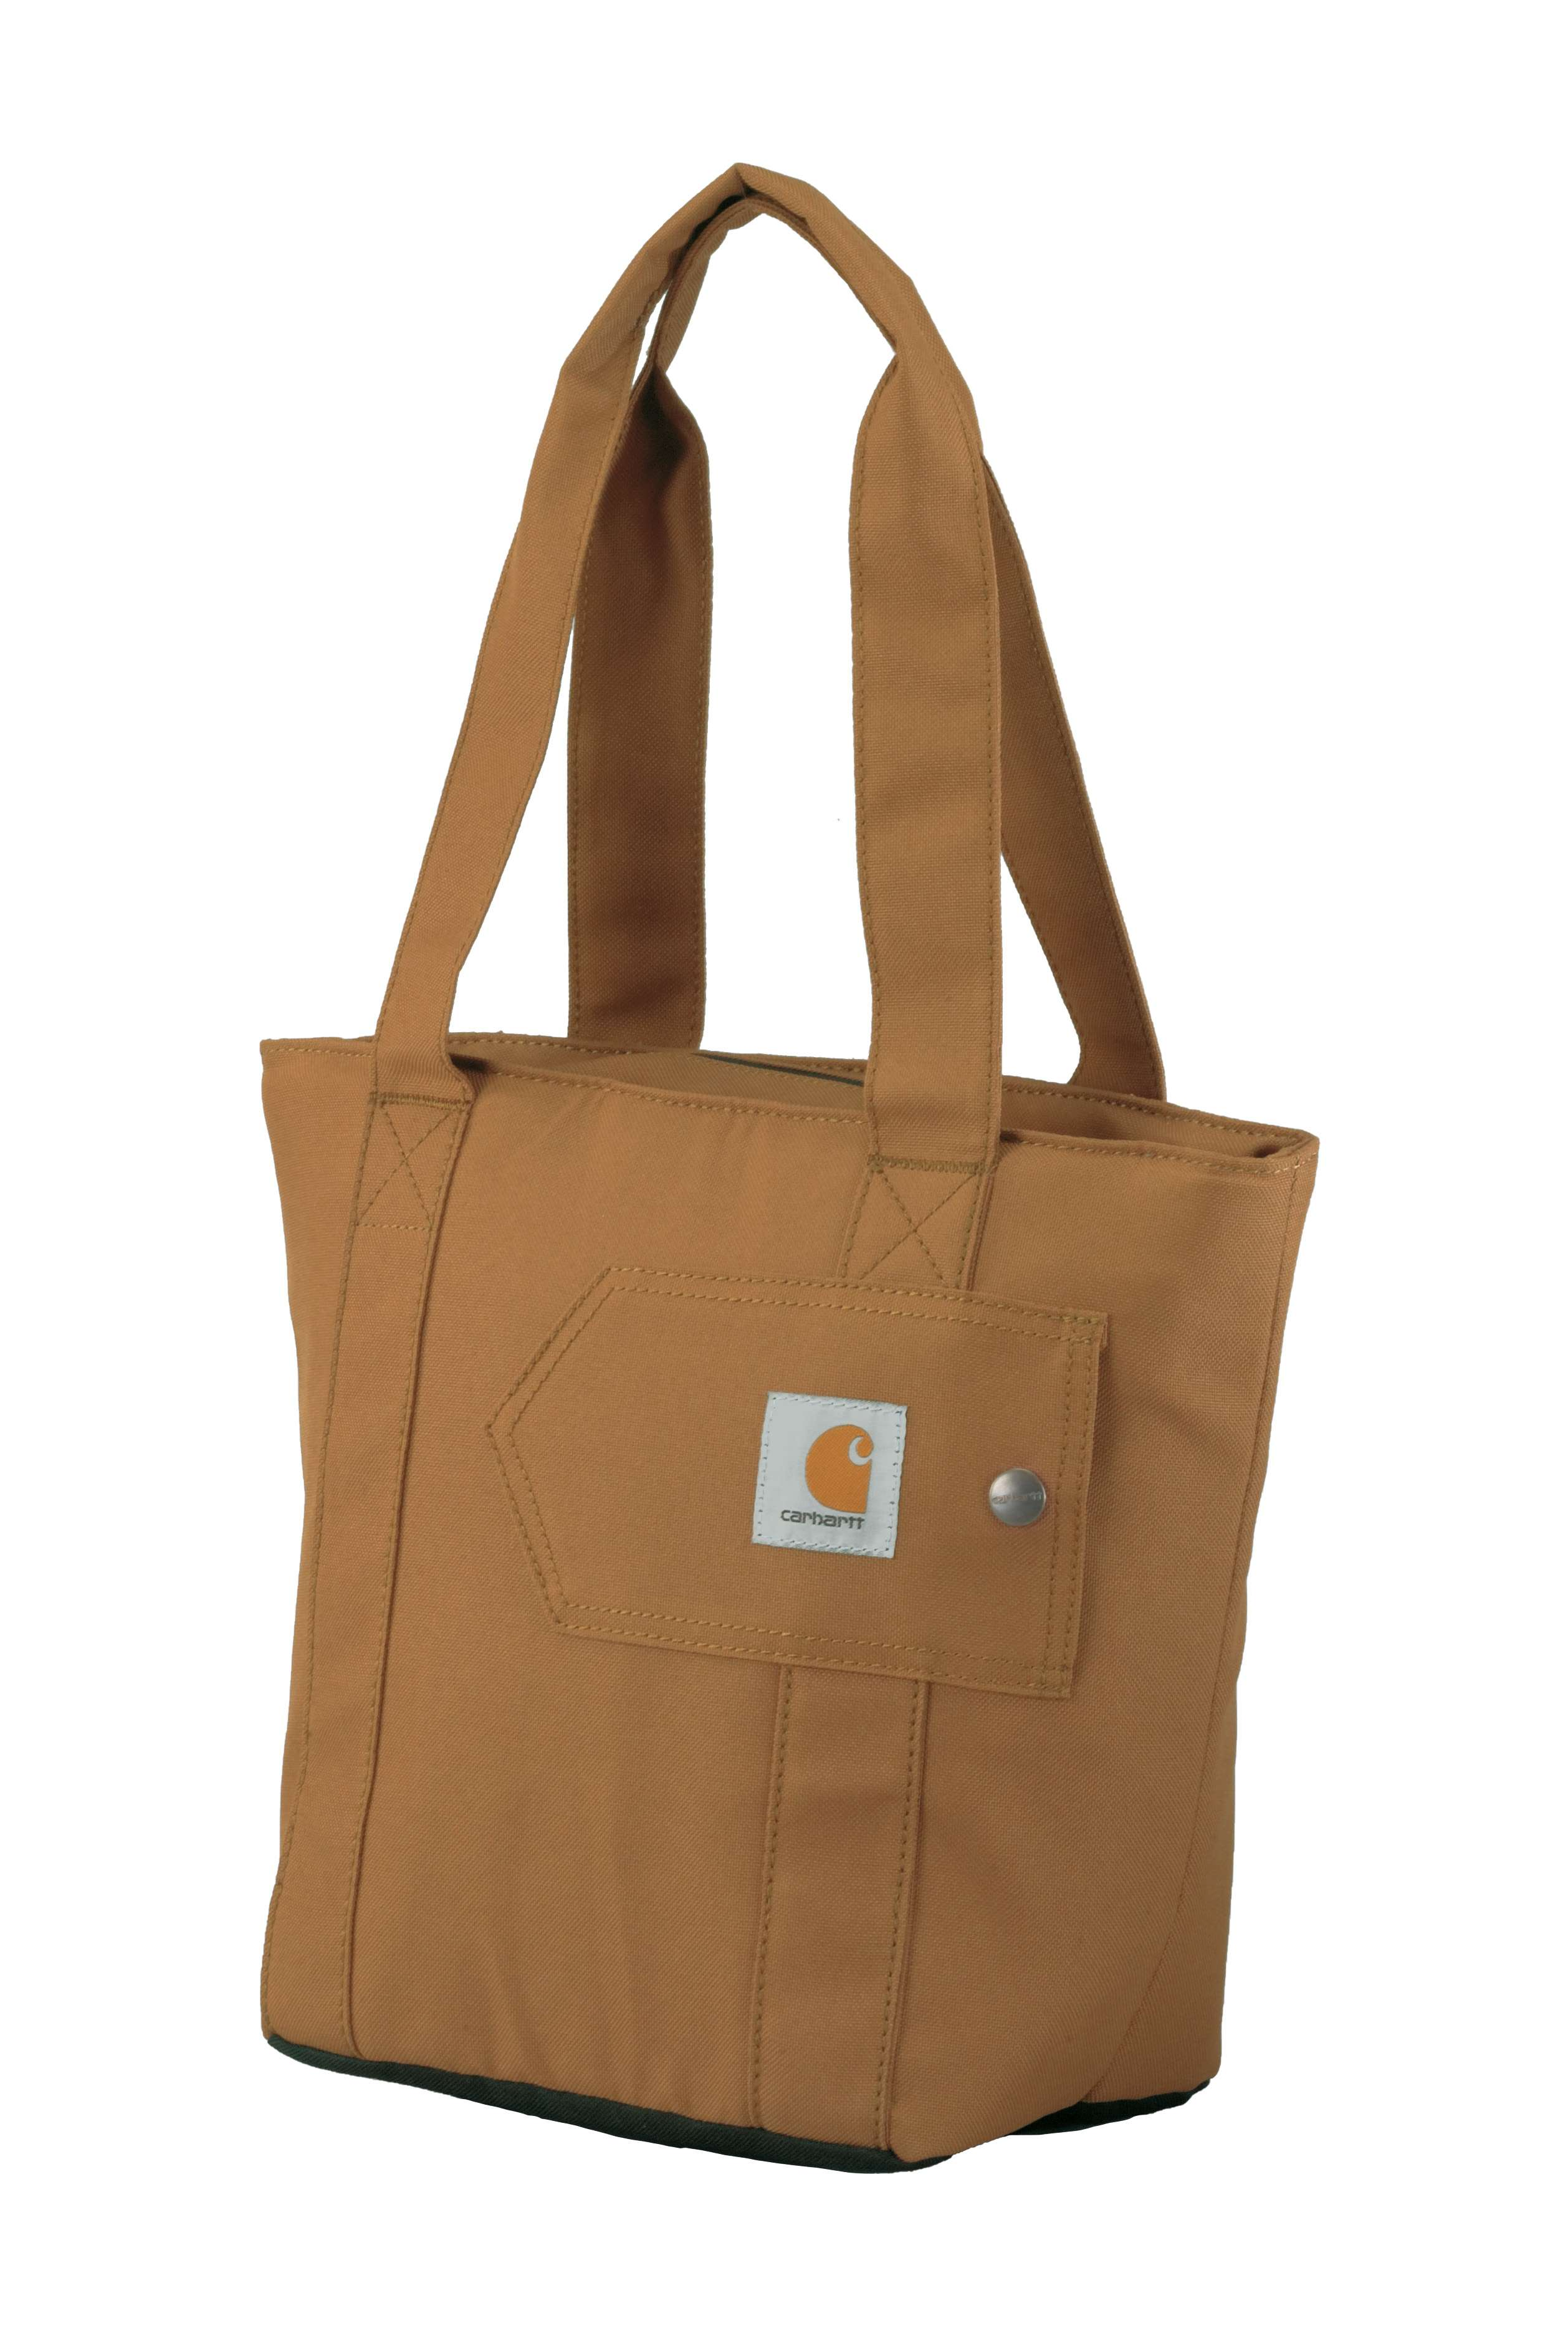 Carhartt Lunch Tote